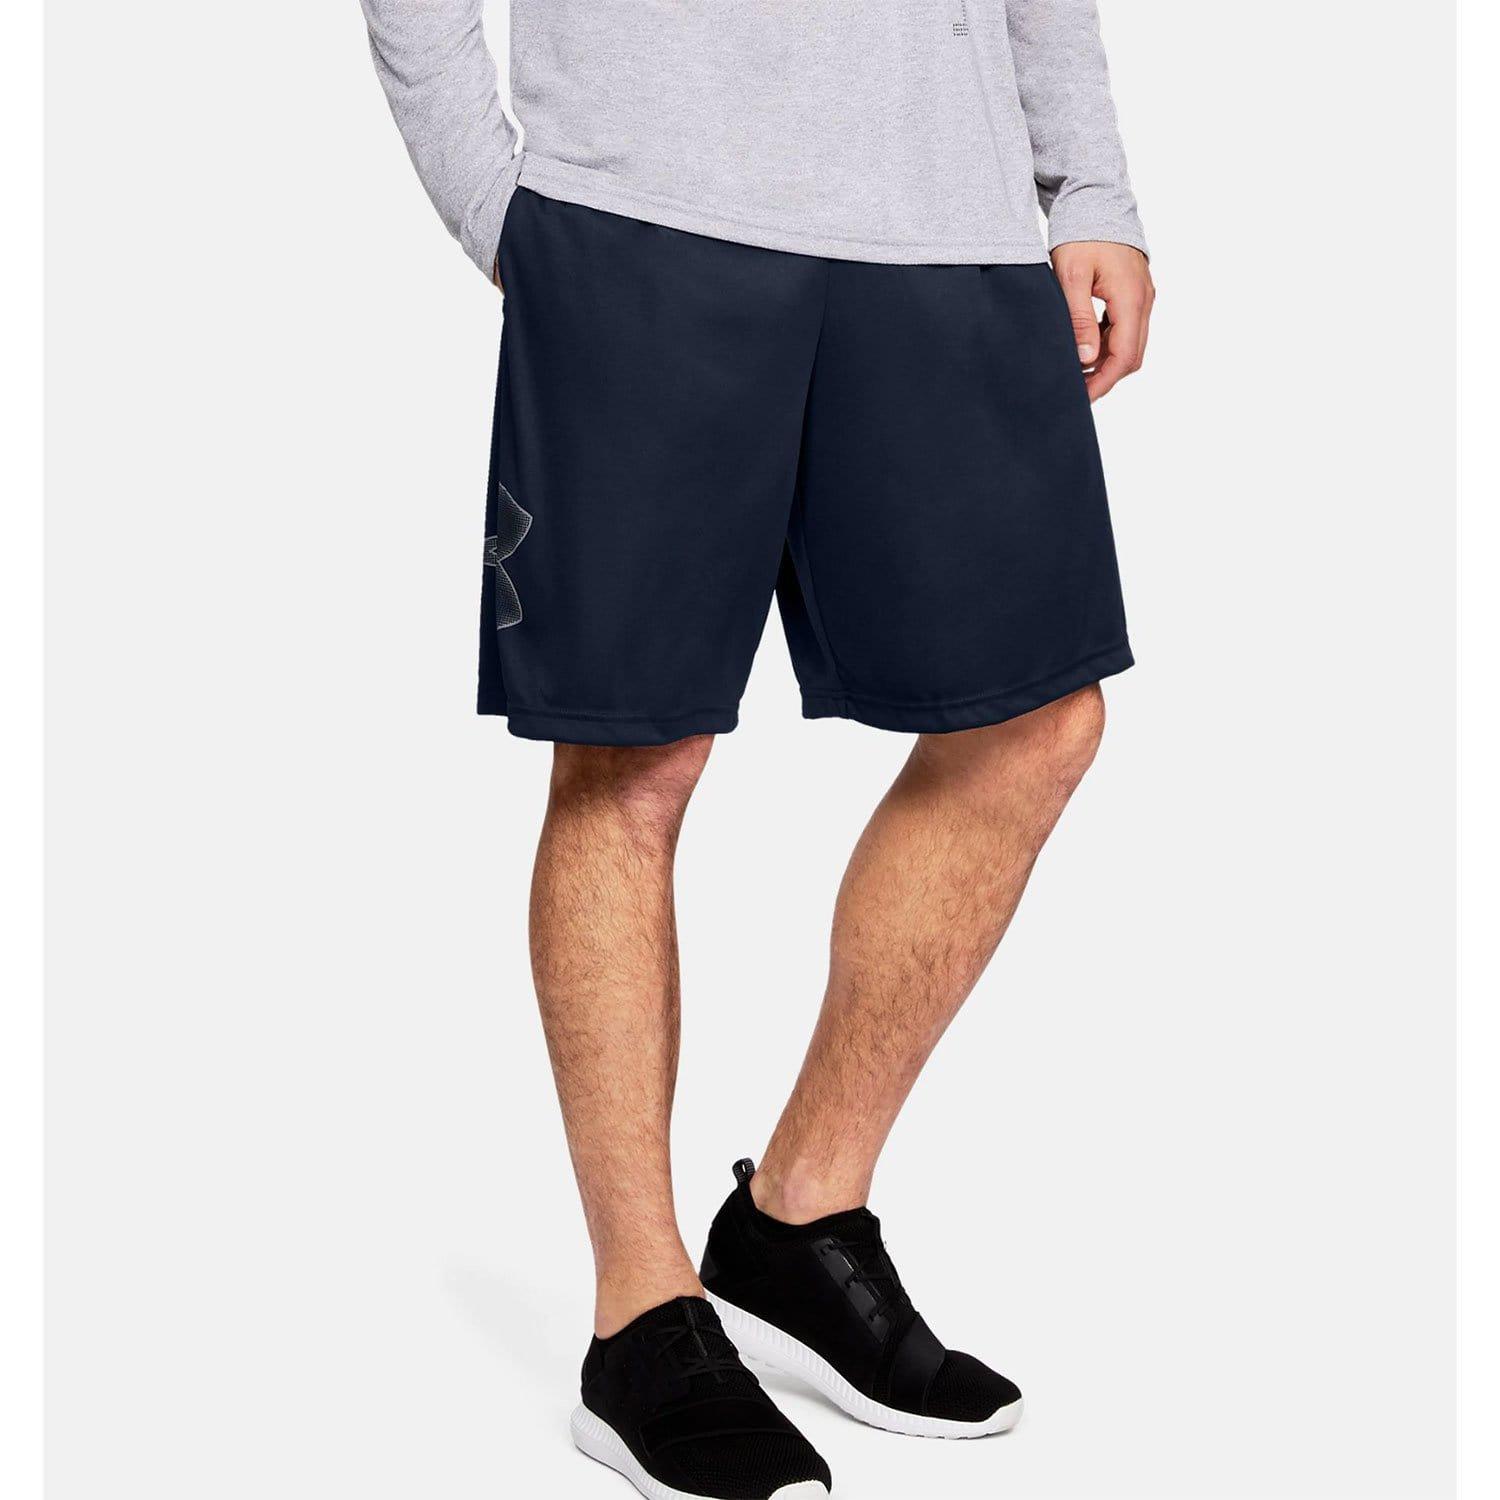 Under Armour Mens Tech Graphic Shorts